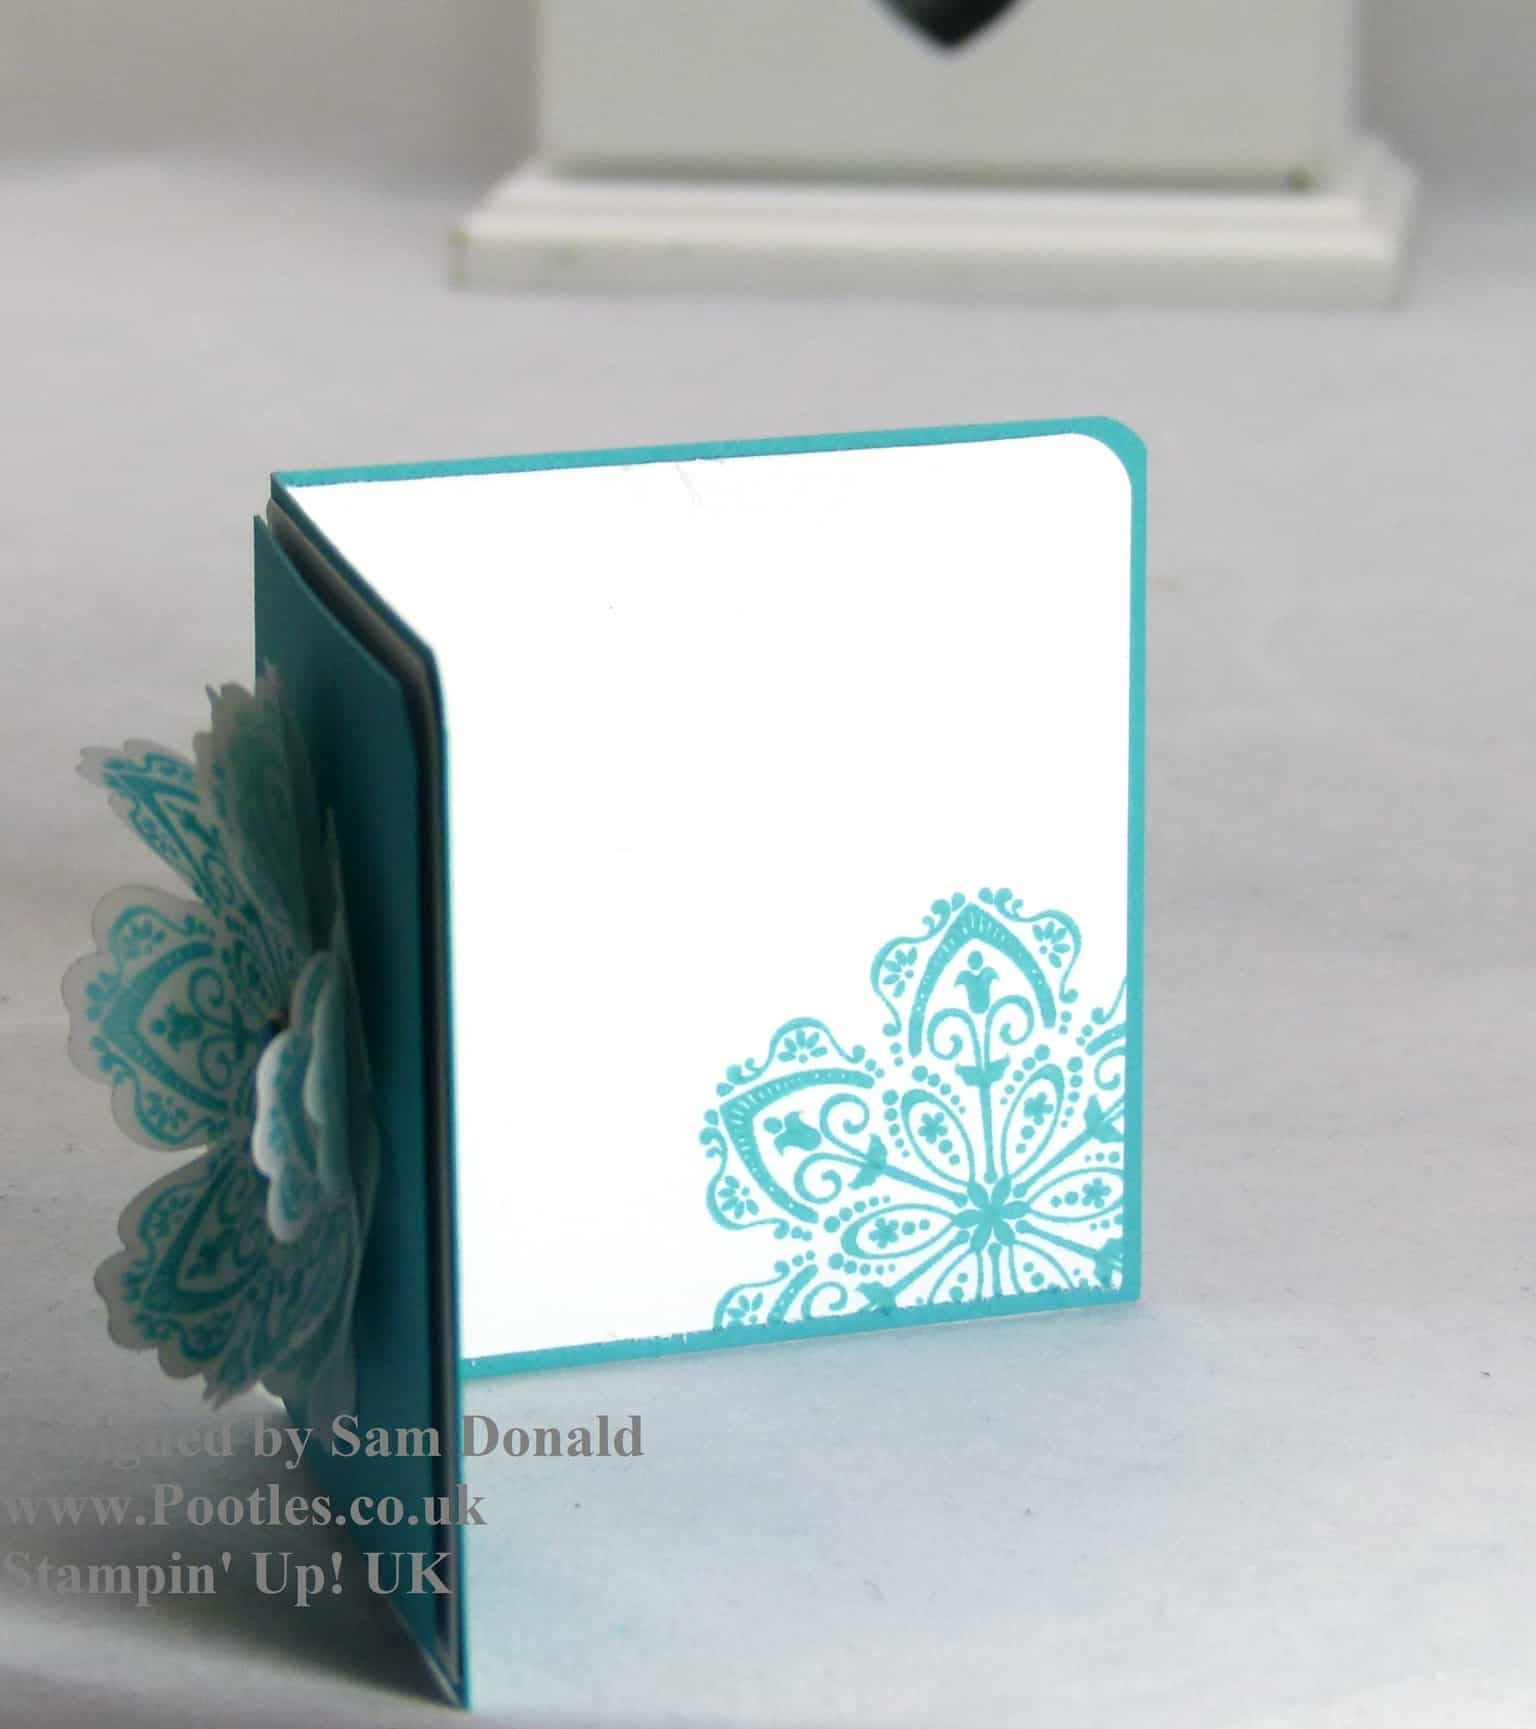 Pootles Stampin Up Vellum showcase 2